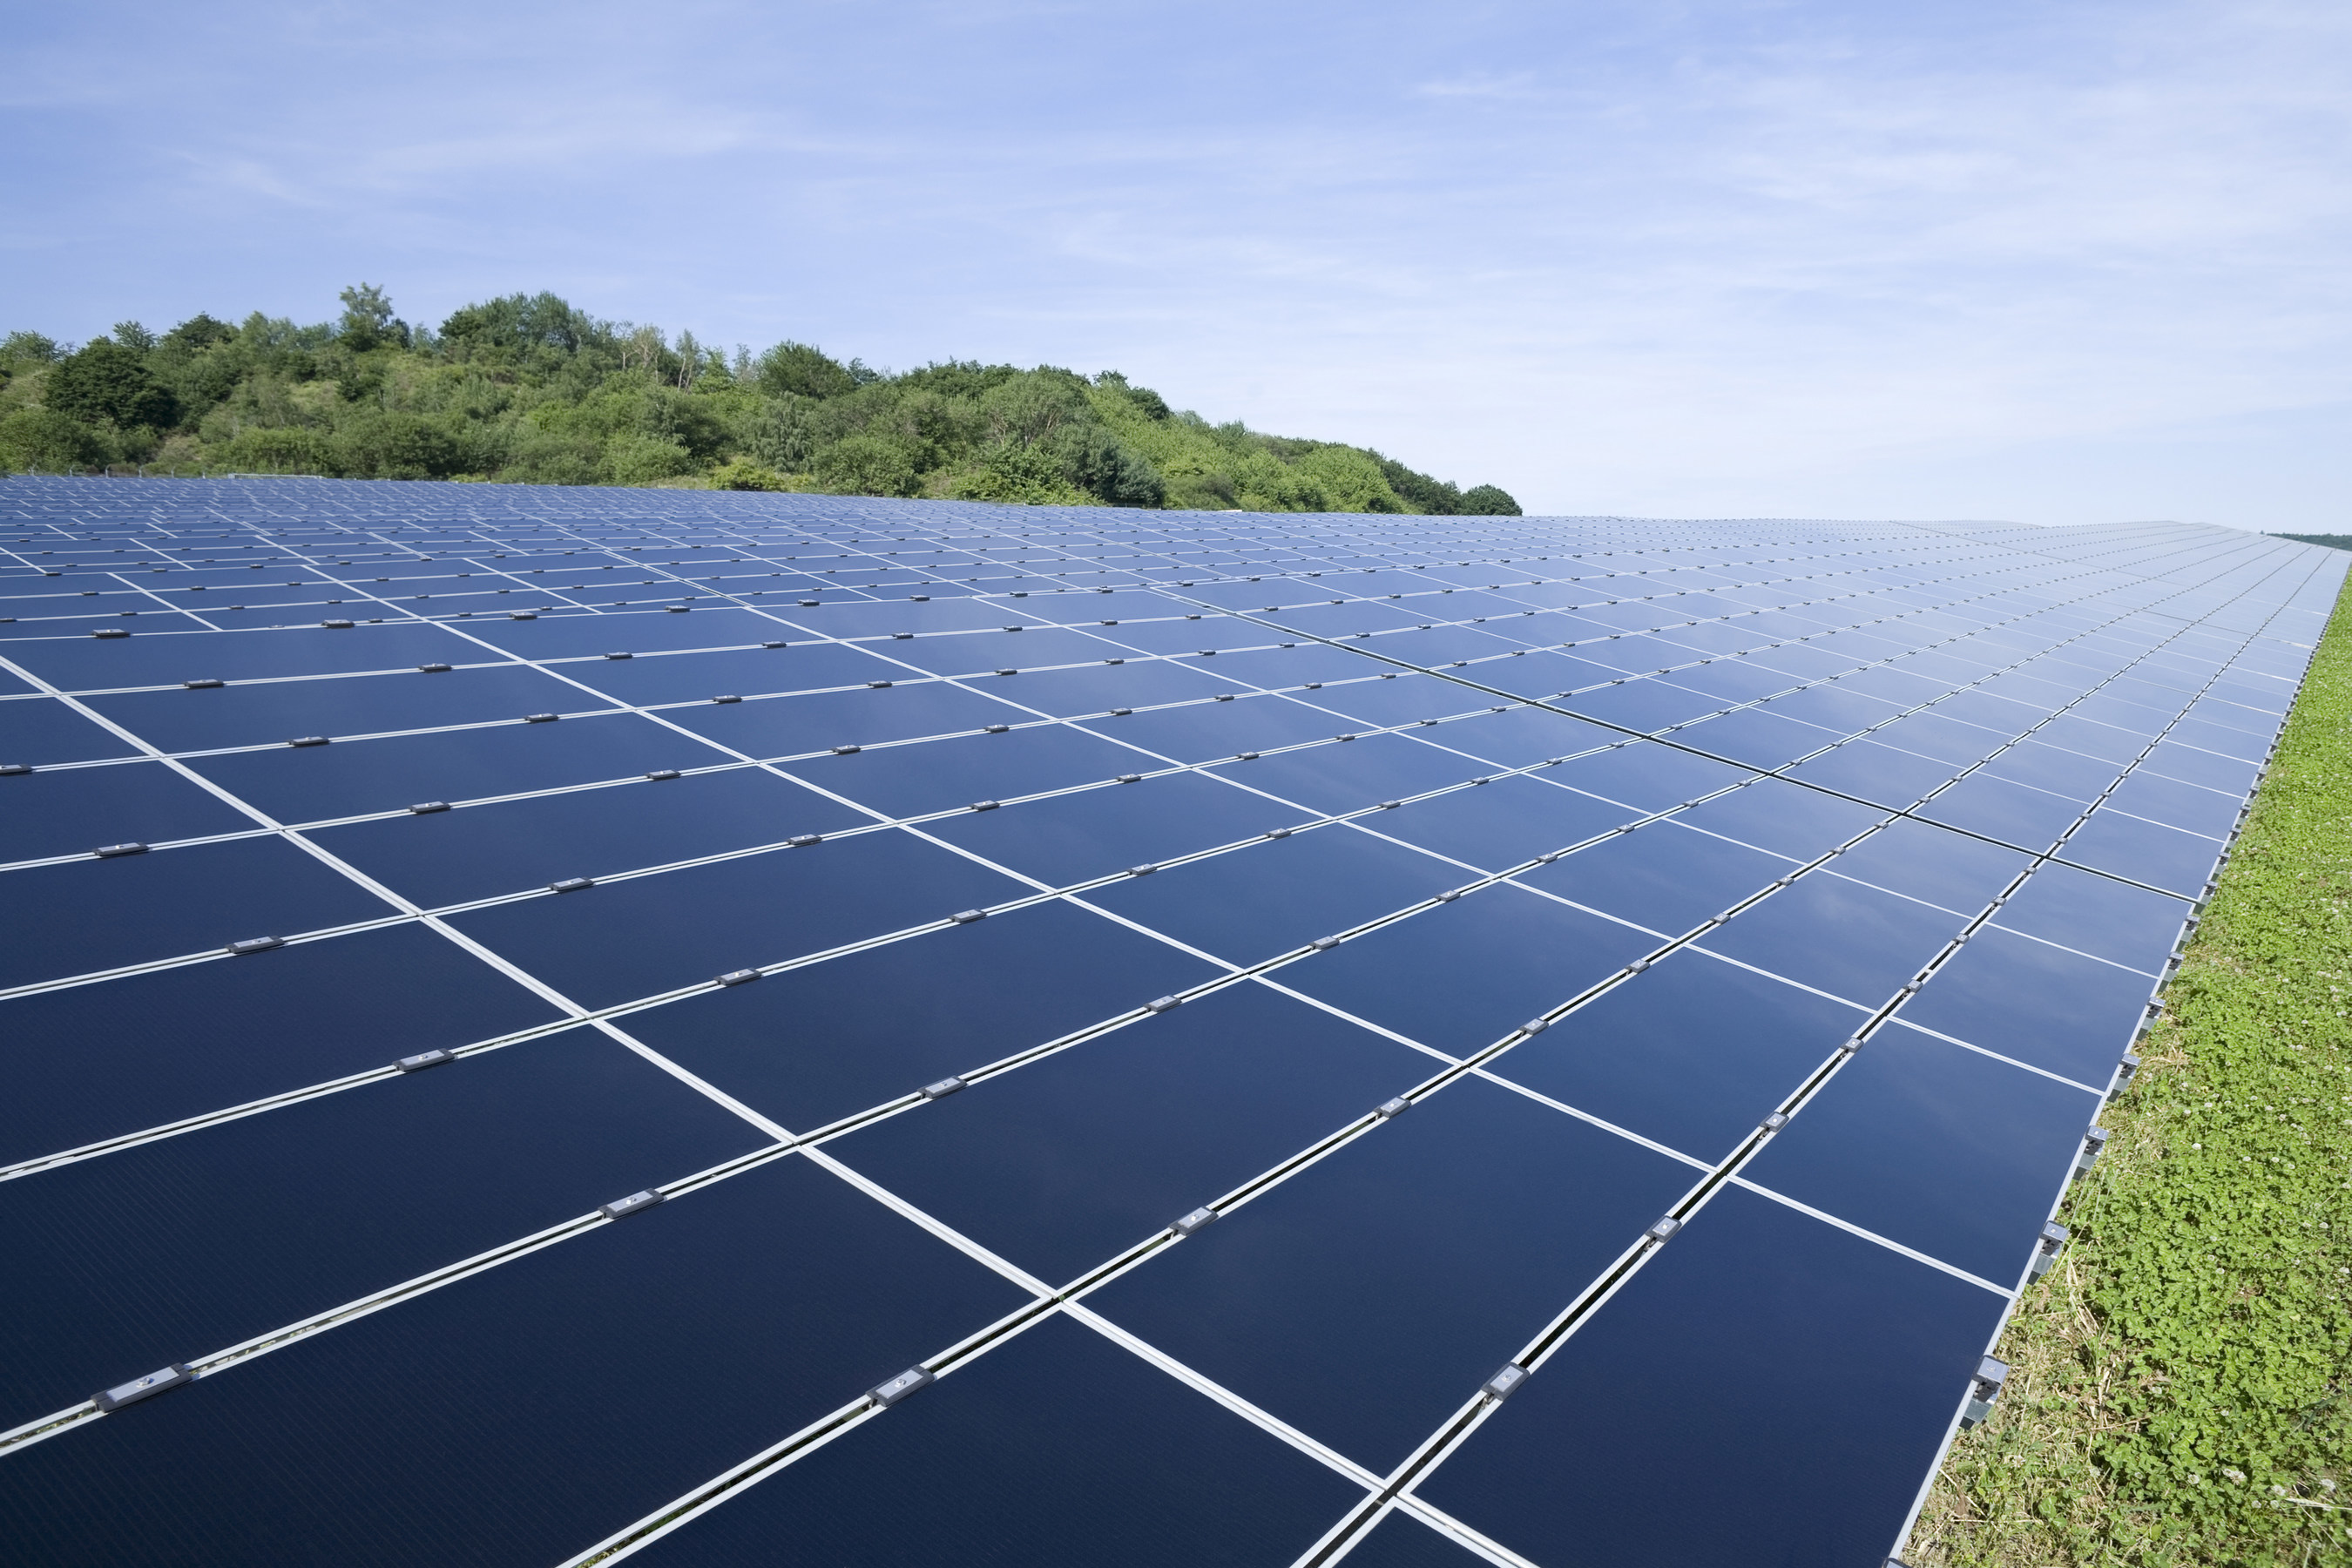 Solar Farm Company Discusses Investment Possibilities with Oil & Gas Developers